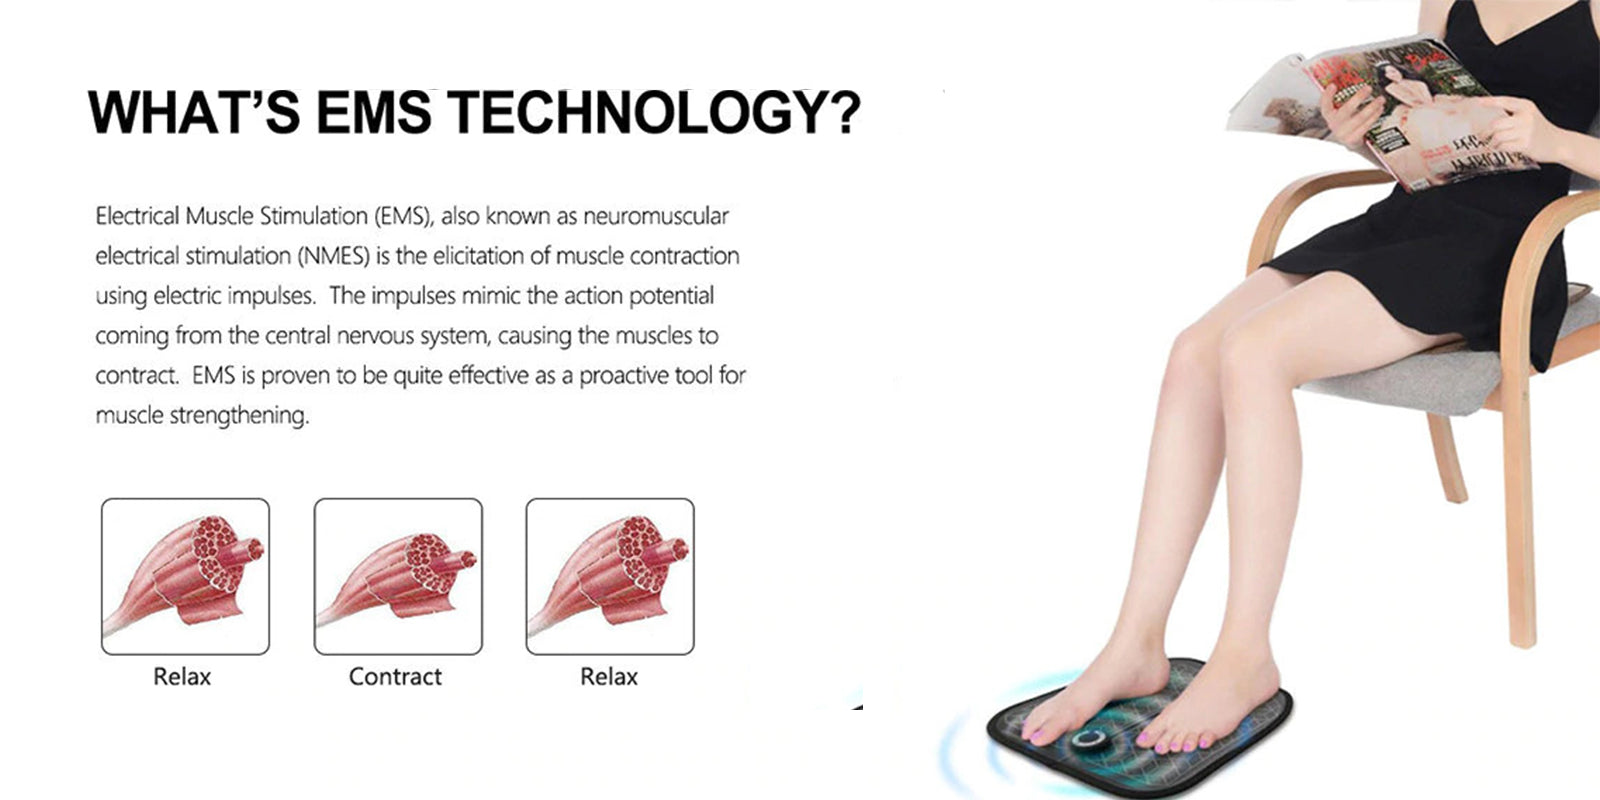 WHAT'S EMS TECHNOLOGY?  Electrical muscle Stimulation (EMS), also  known as neuromuscular Electrical stimulation (NMES) is the elicitation of muscle contraction using electric impulses.